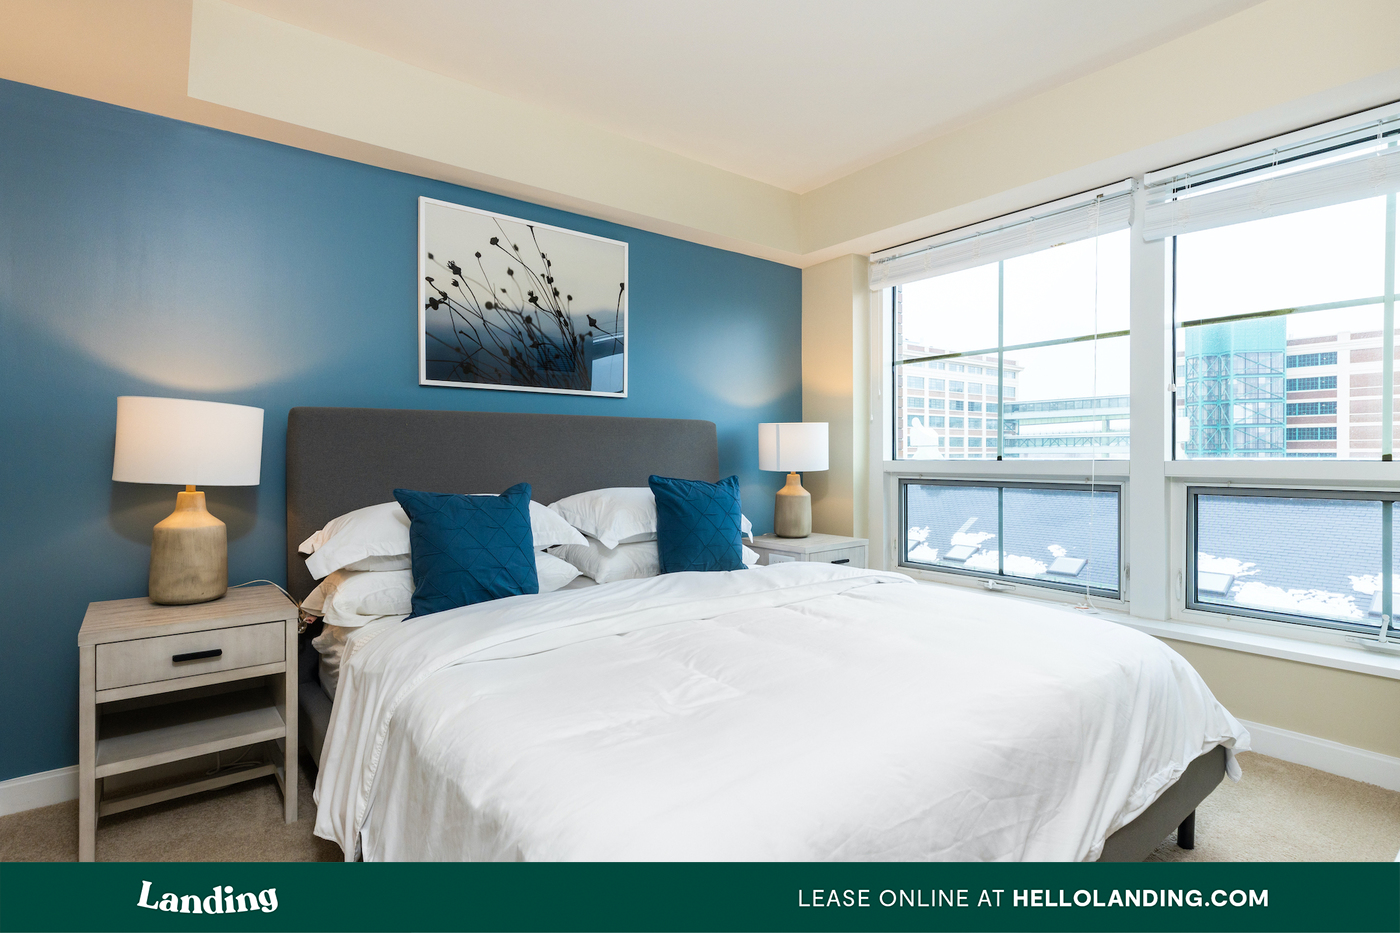 Harborview at the Navy Yard for rent